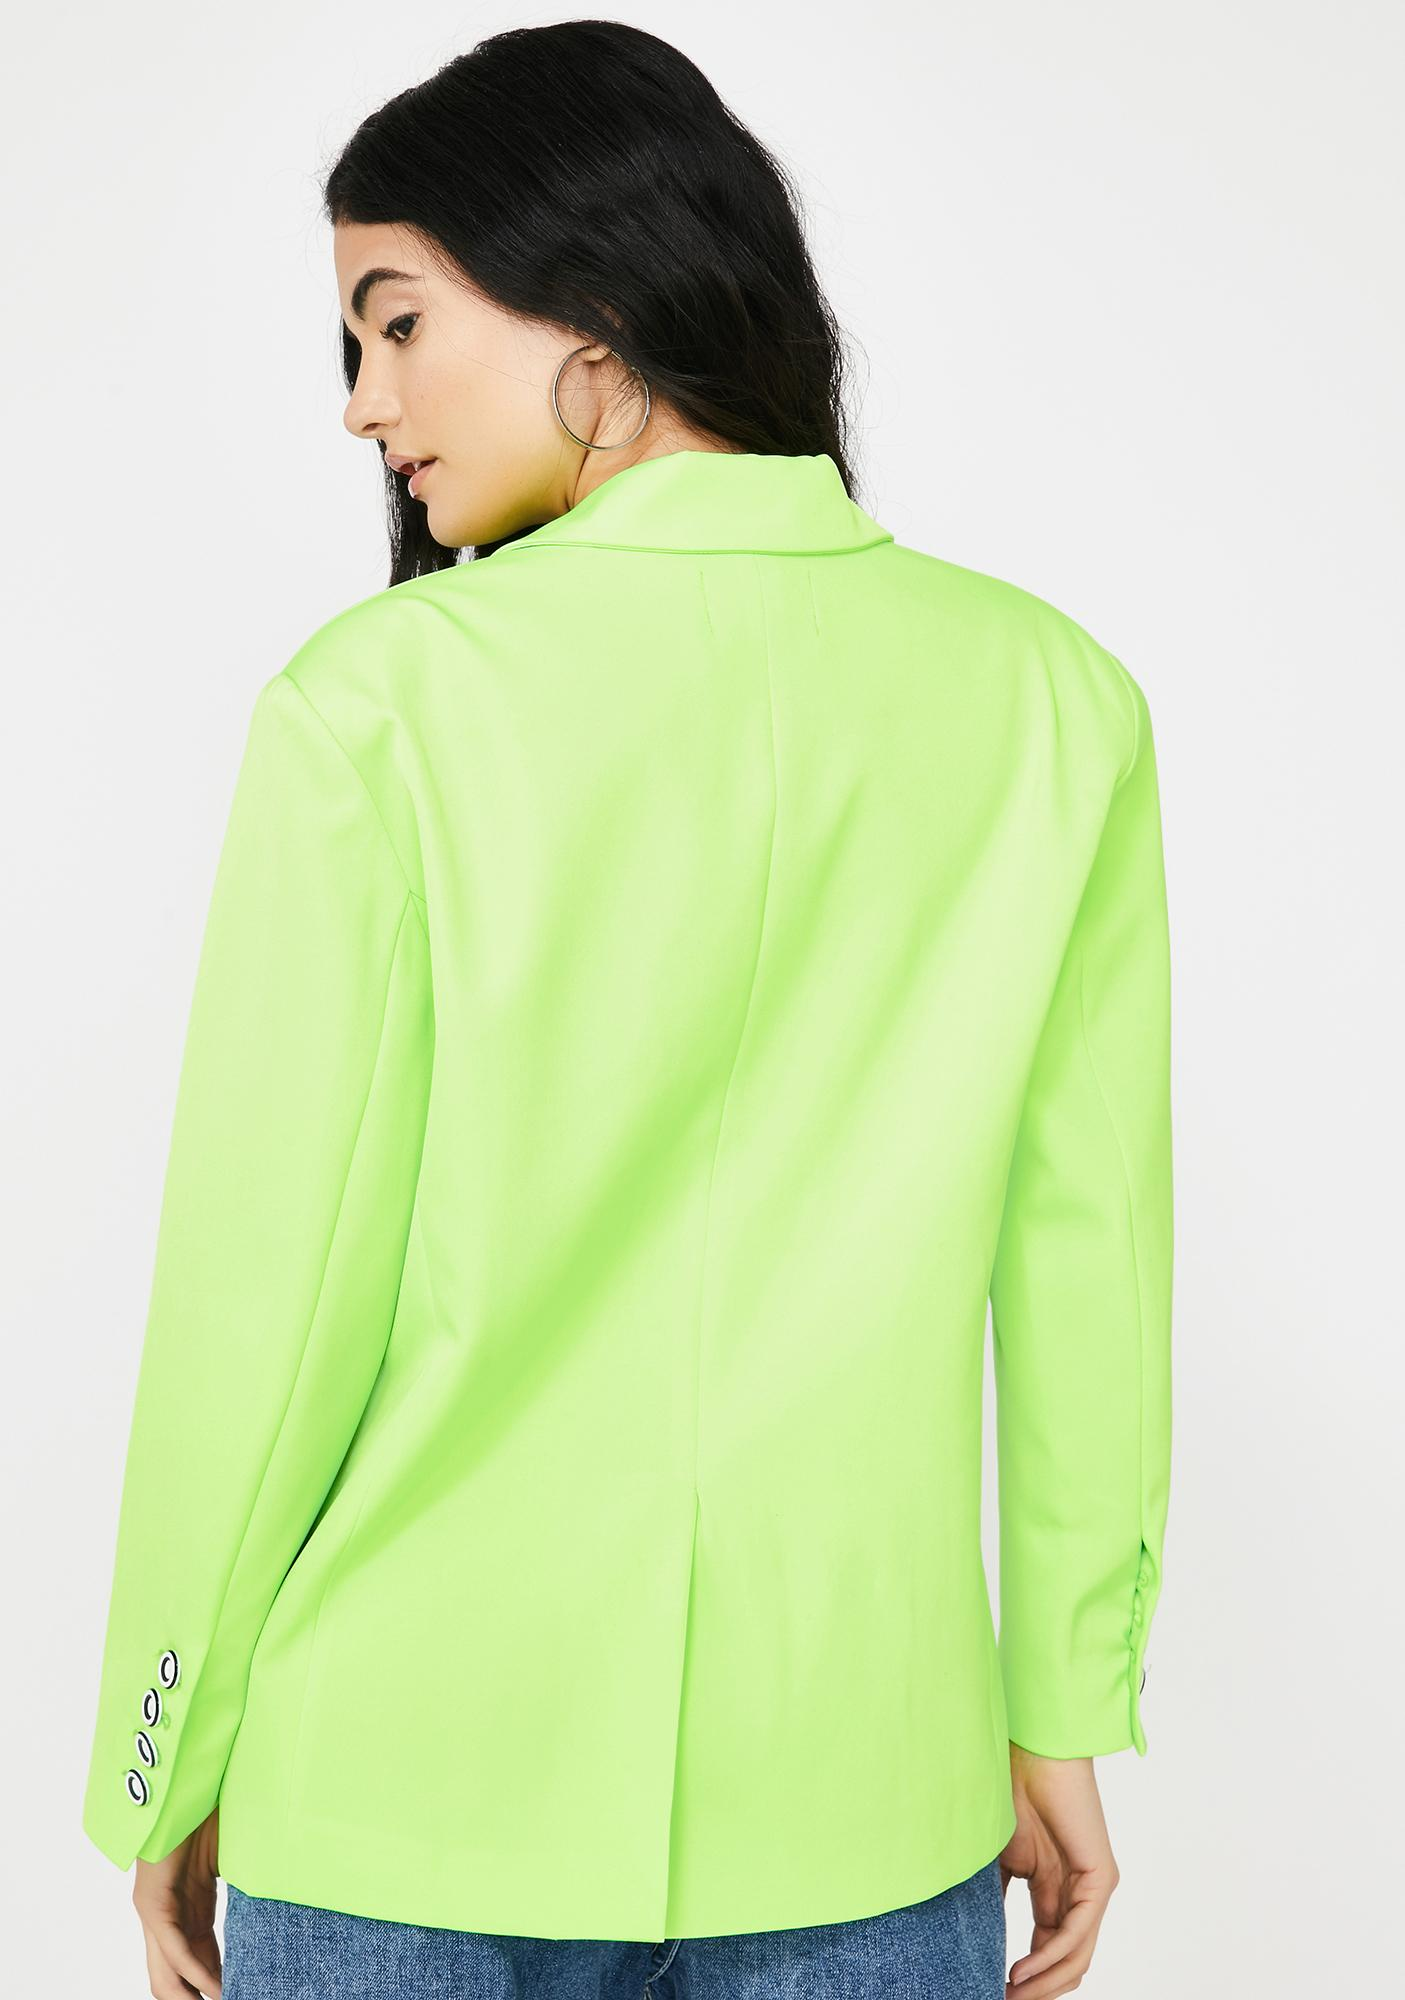 THE KRIPT Hailey Neon Blazer